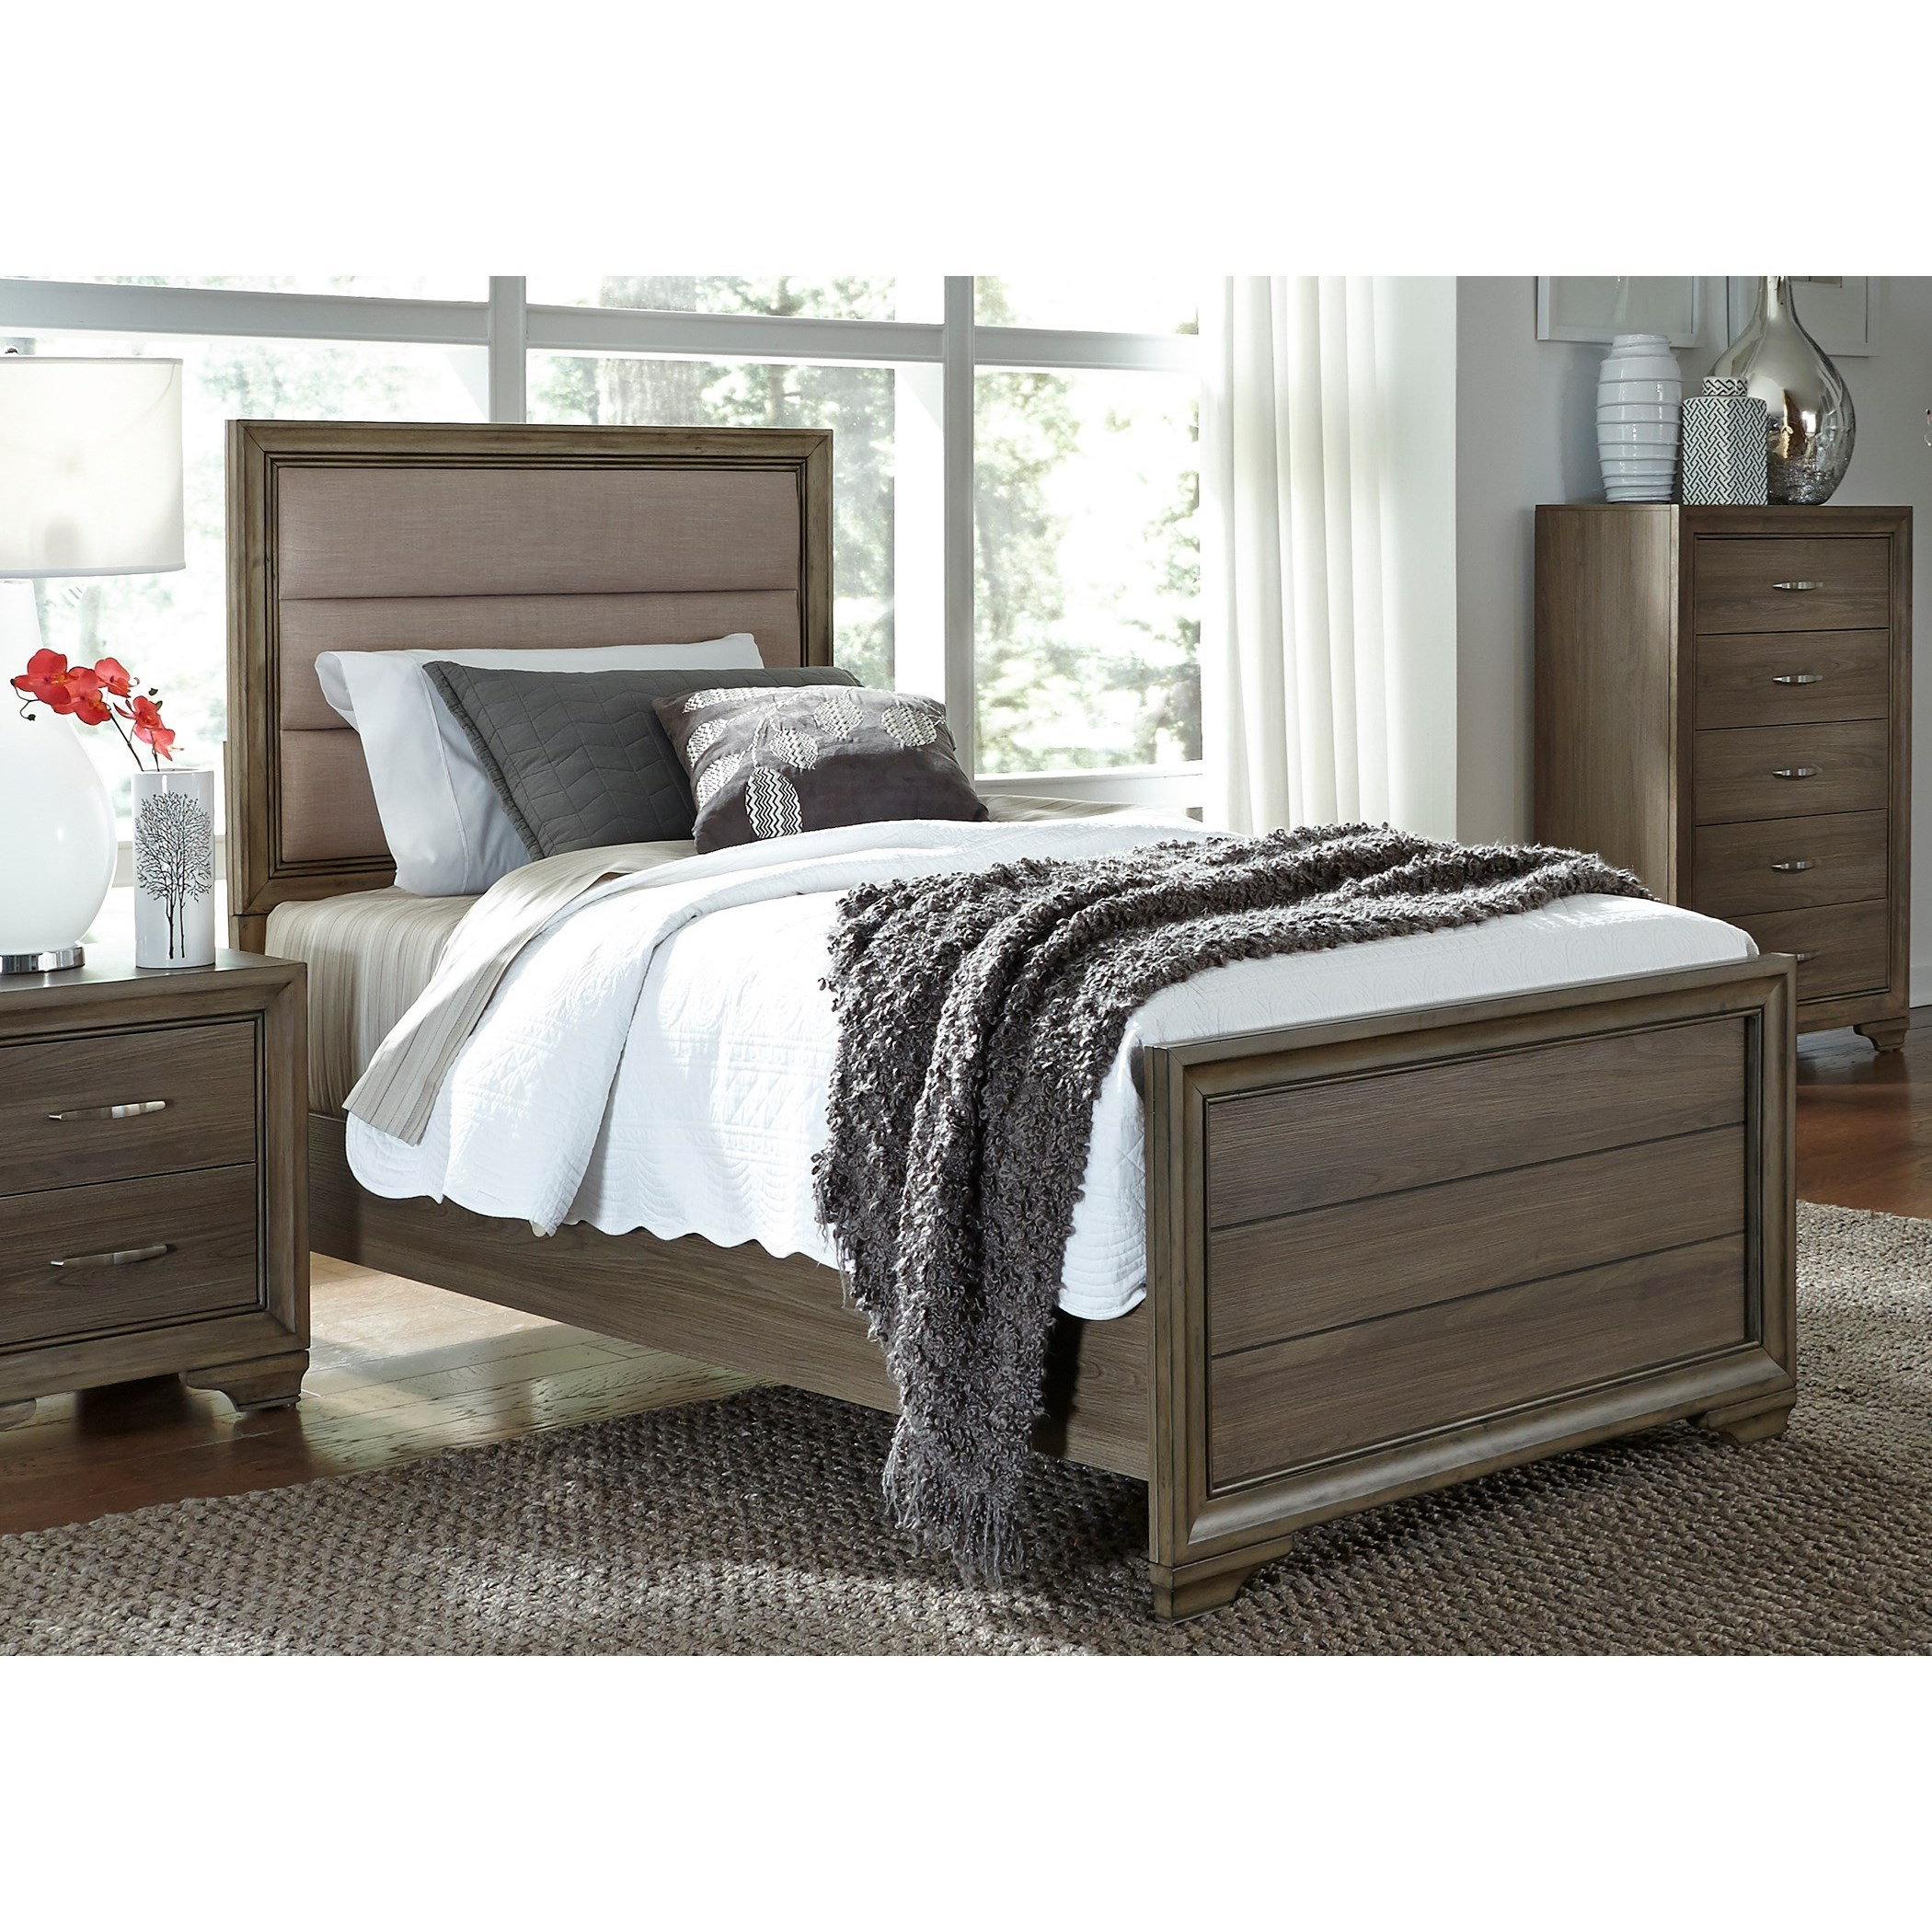 Hartly Twin Upholstered Bed Rotmans Upholstered Beds